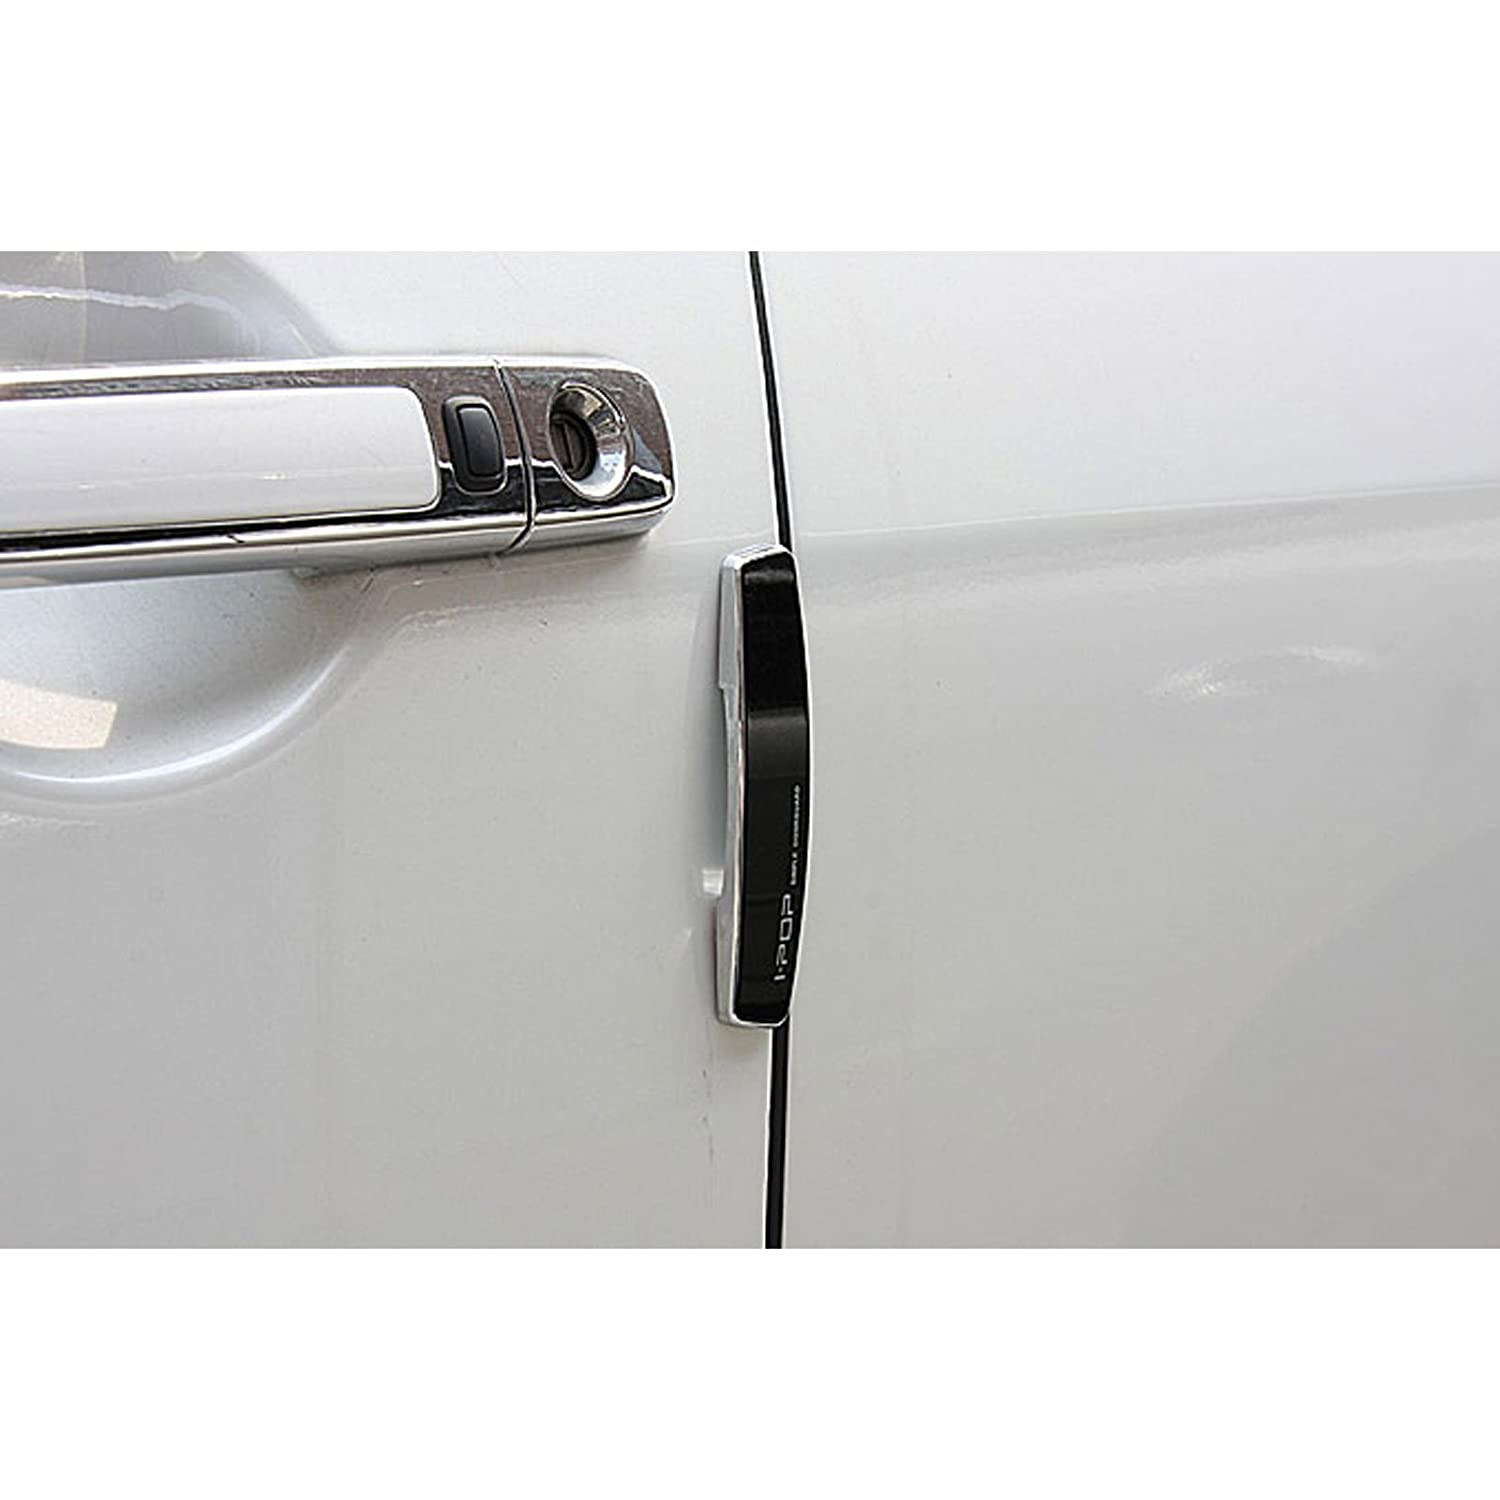 Amazon.com Black Slim 4pcs Door Edge Guards Bumper Protector Guard Black Chrome Coat Moldings for Car Motors Auto Vehicle Automotive  sc 1 st  Amazon.com & Amazon.com: Black Slim 4pcs Door Edge Guards Bumper Protector Guard ...